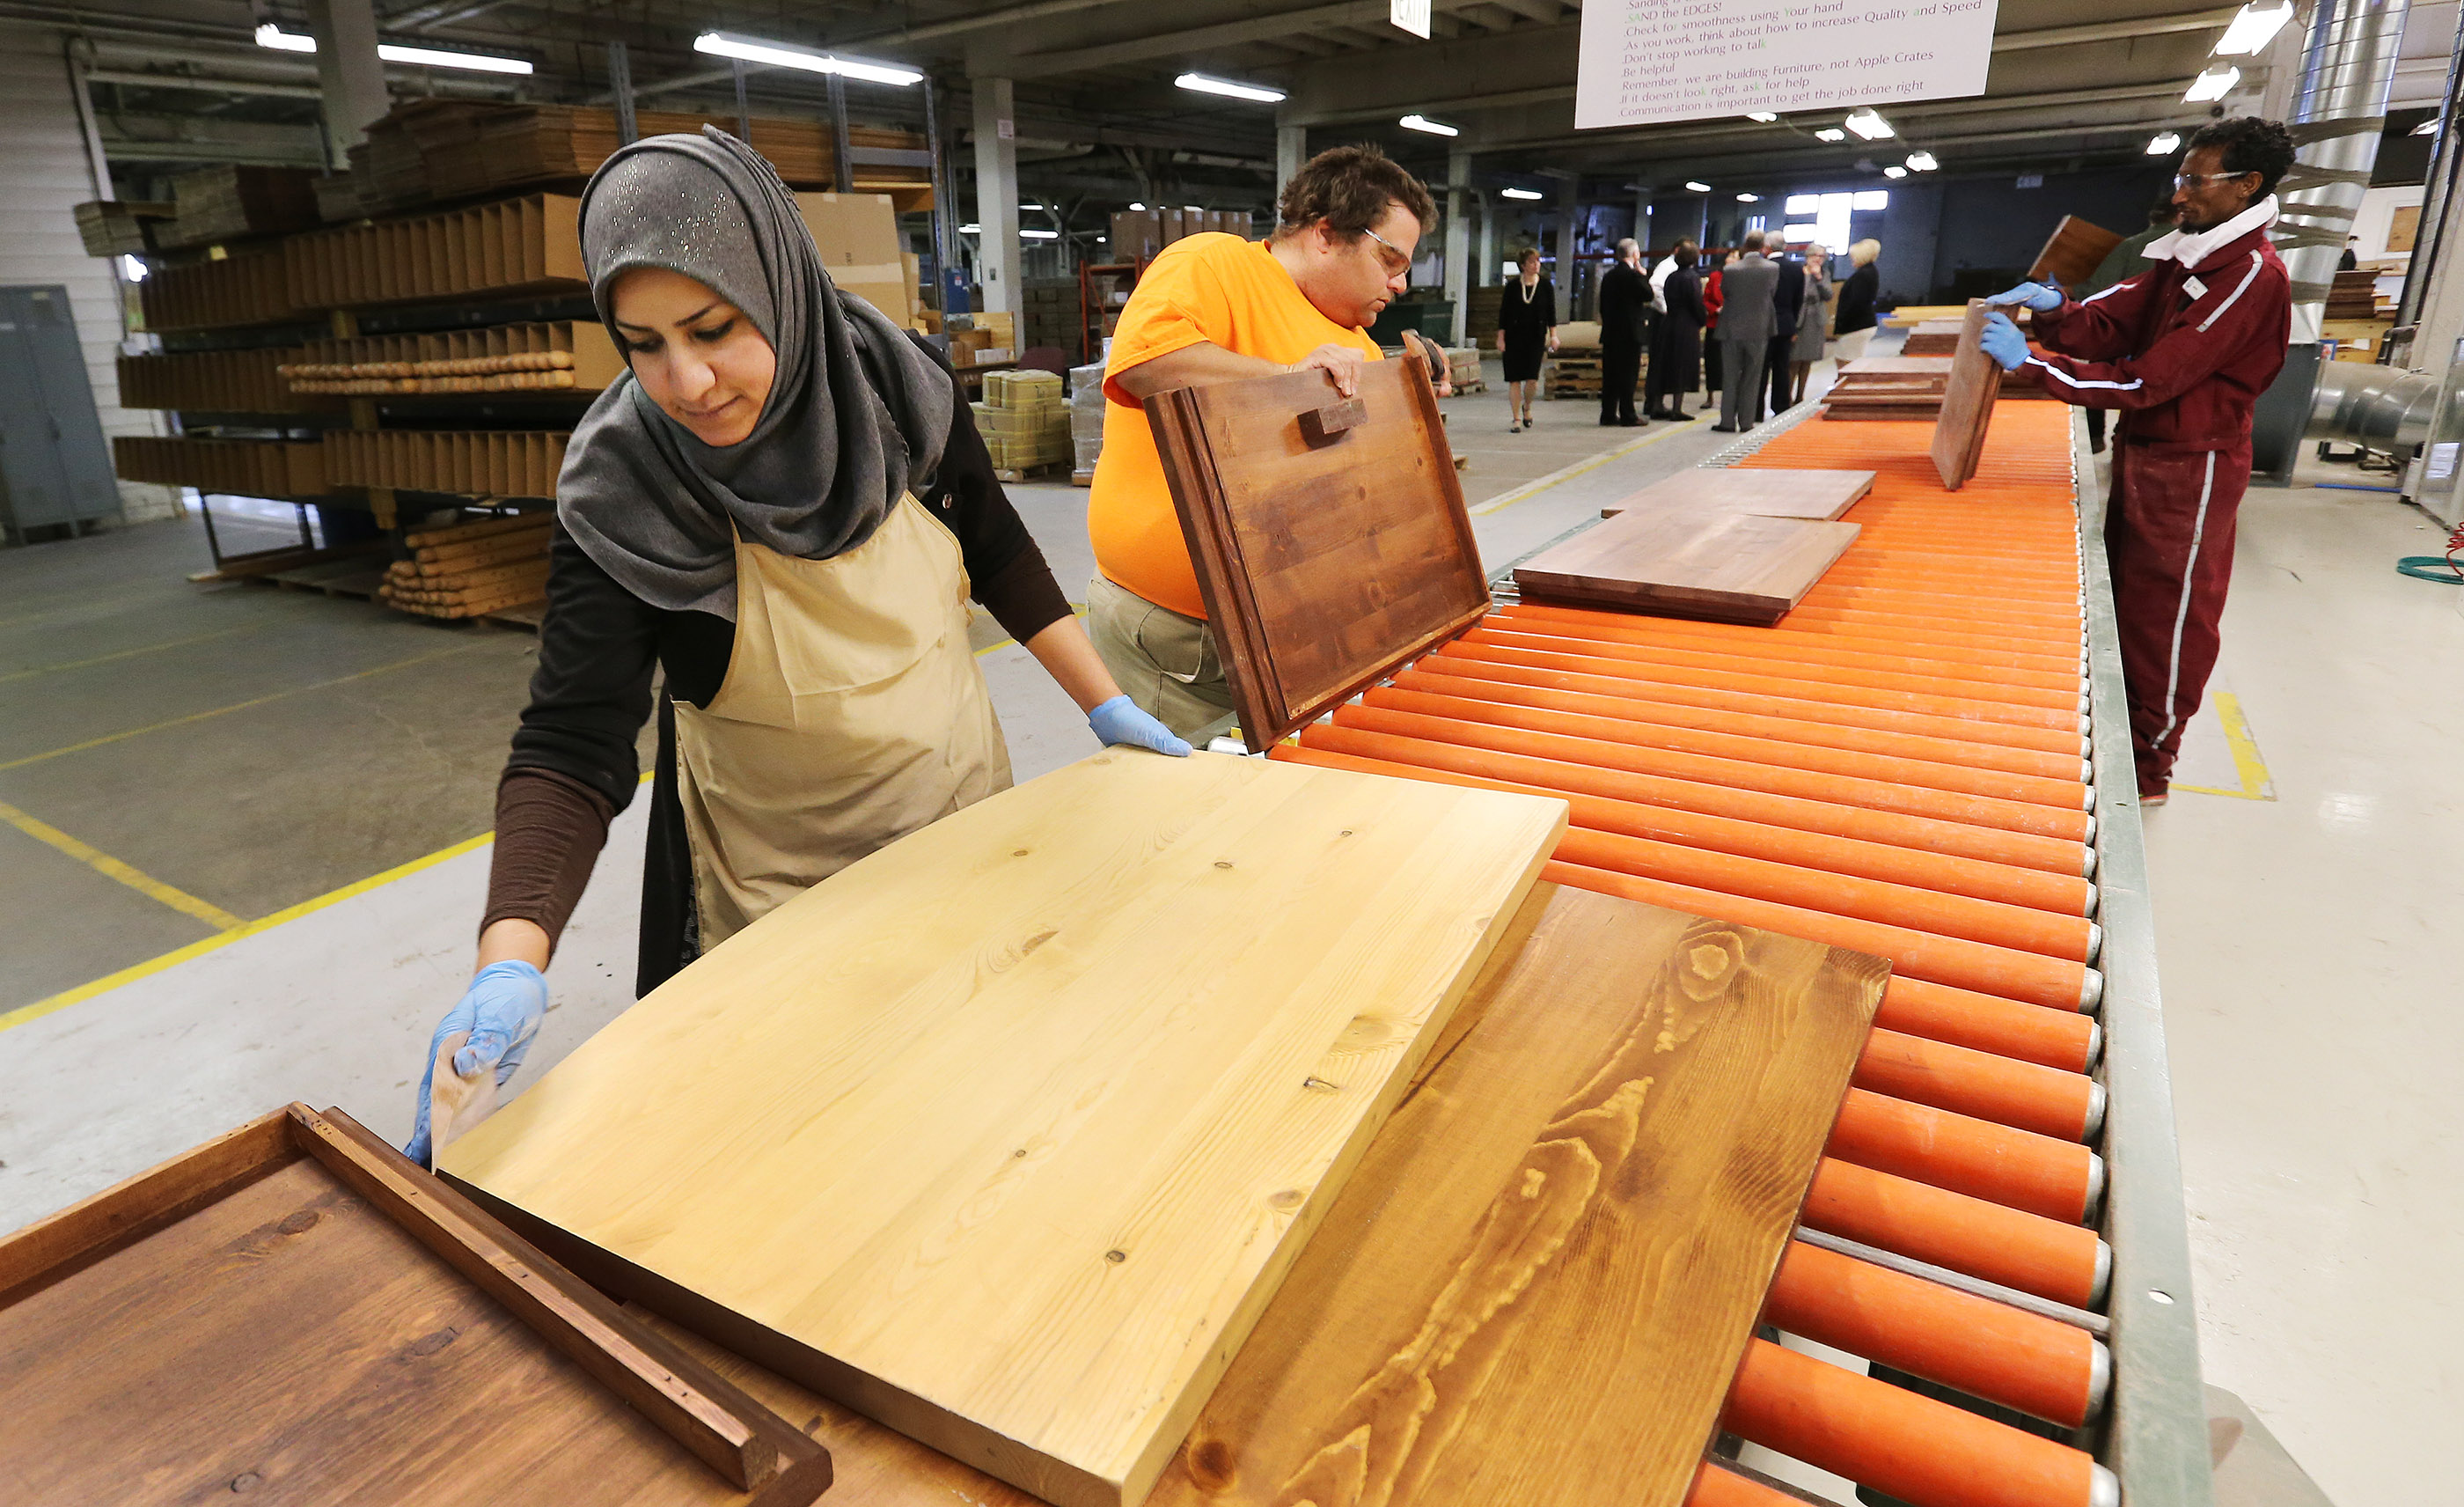 A refugee builds furniture that will be donated to help other refugees resettle in the United States.